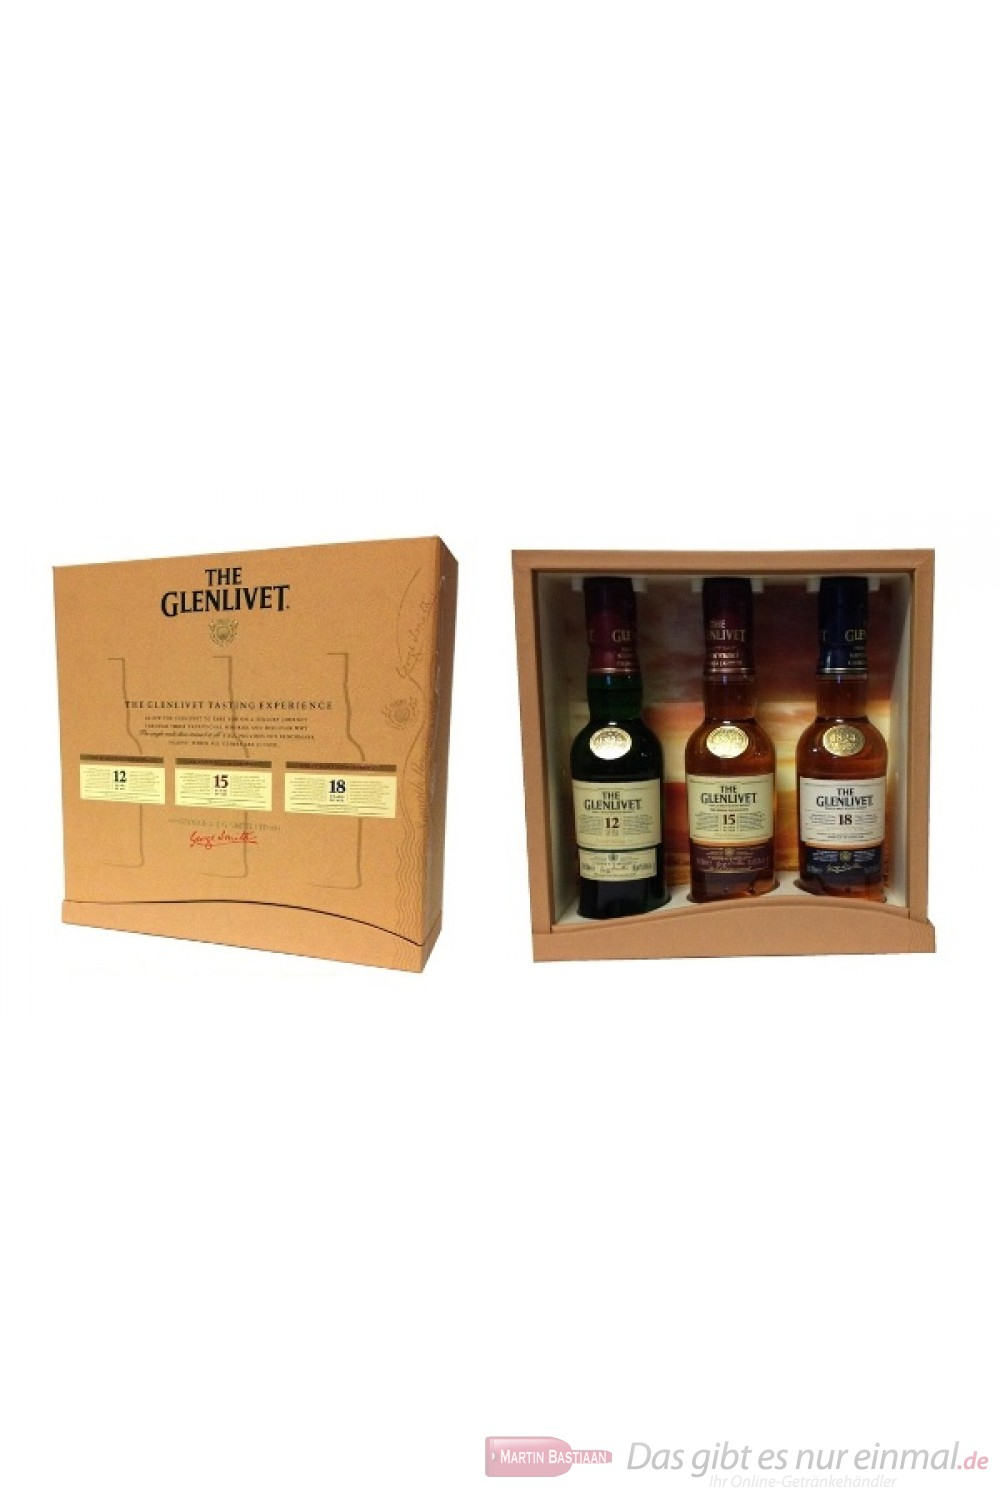 The Glenlivet Probierset